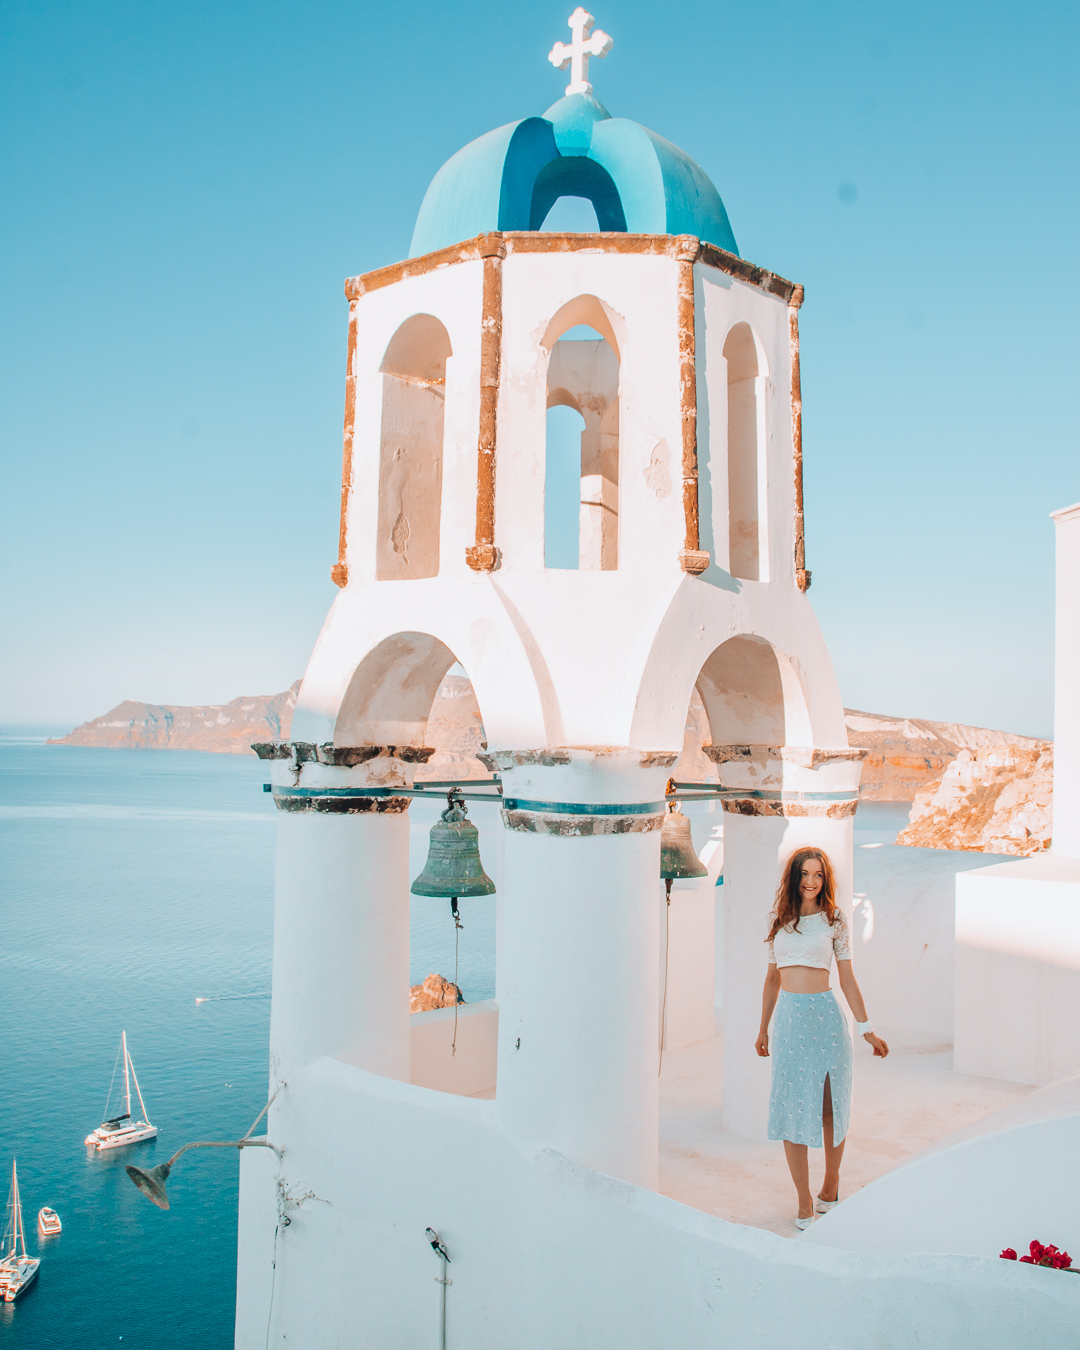 Happy girl at a beautiful bell tower in Santorini